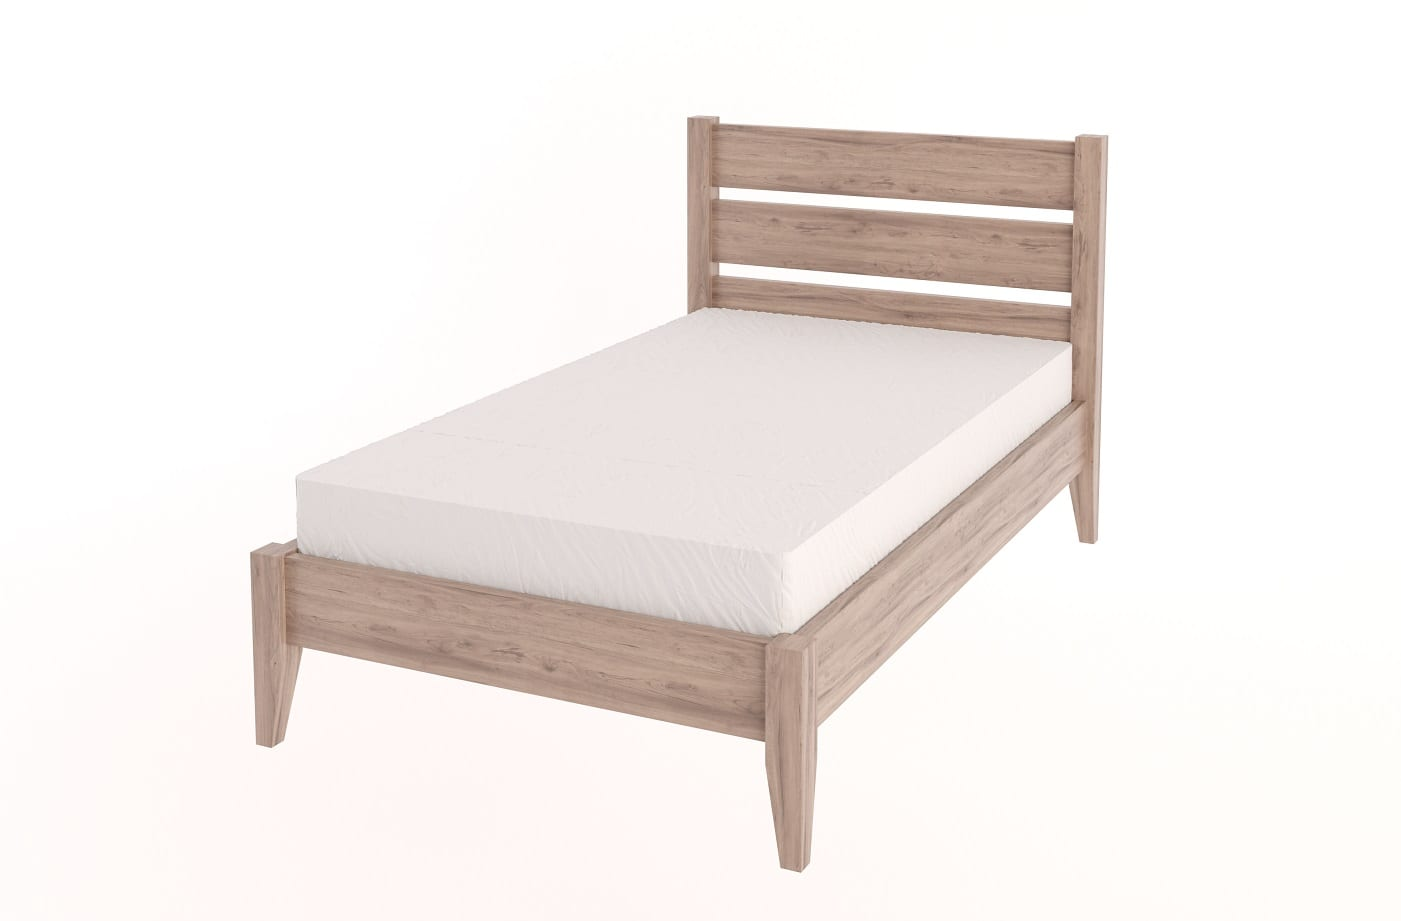 3/4 Tapered Bed